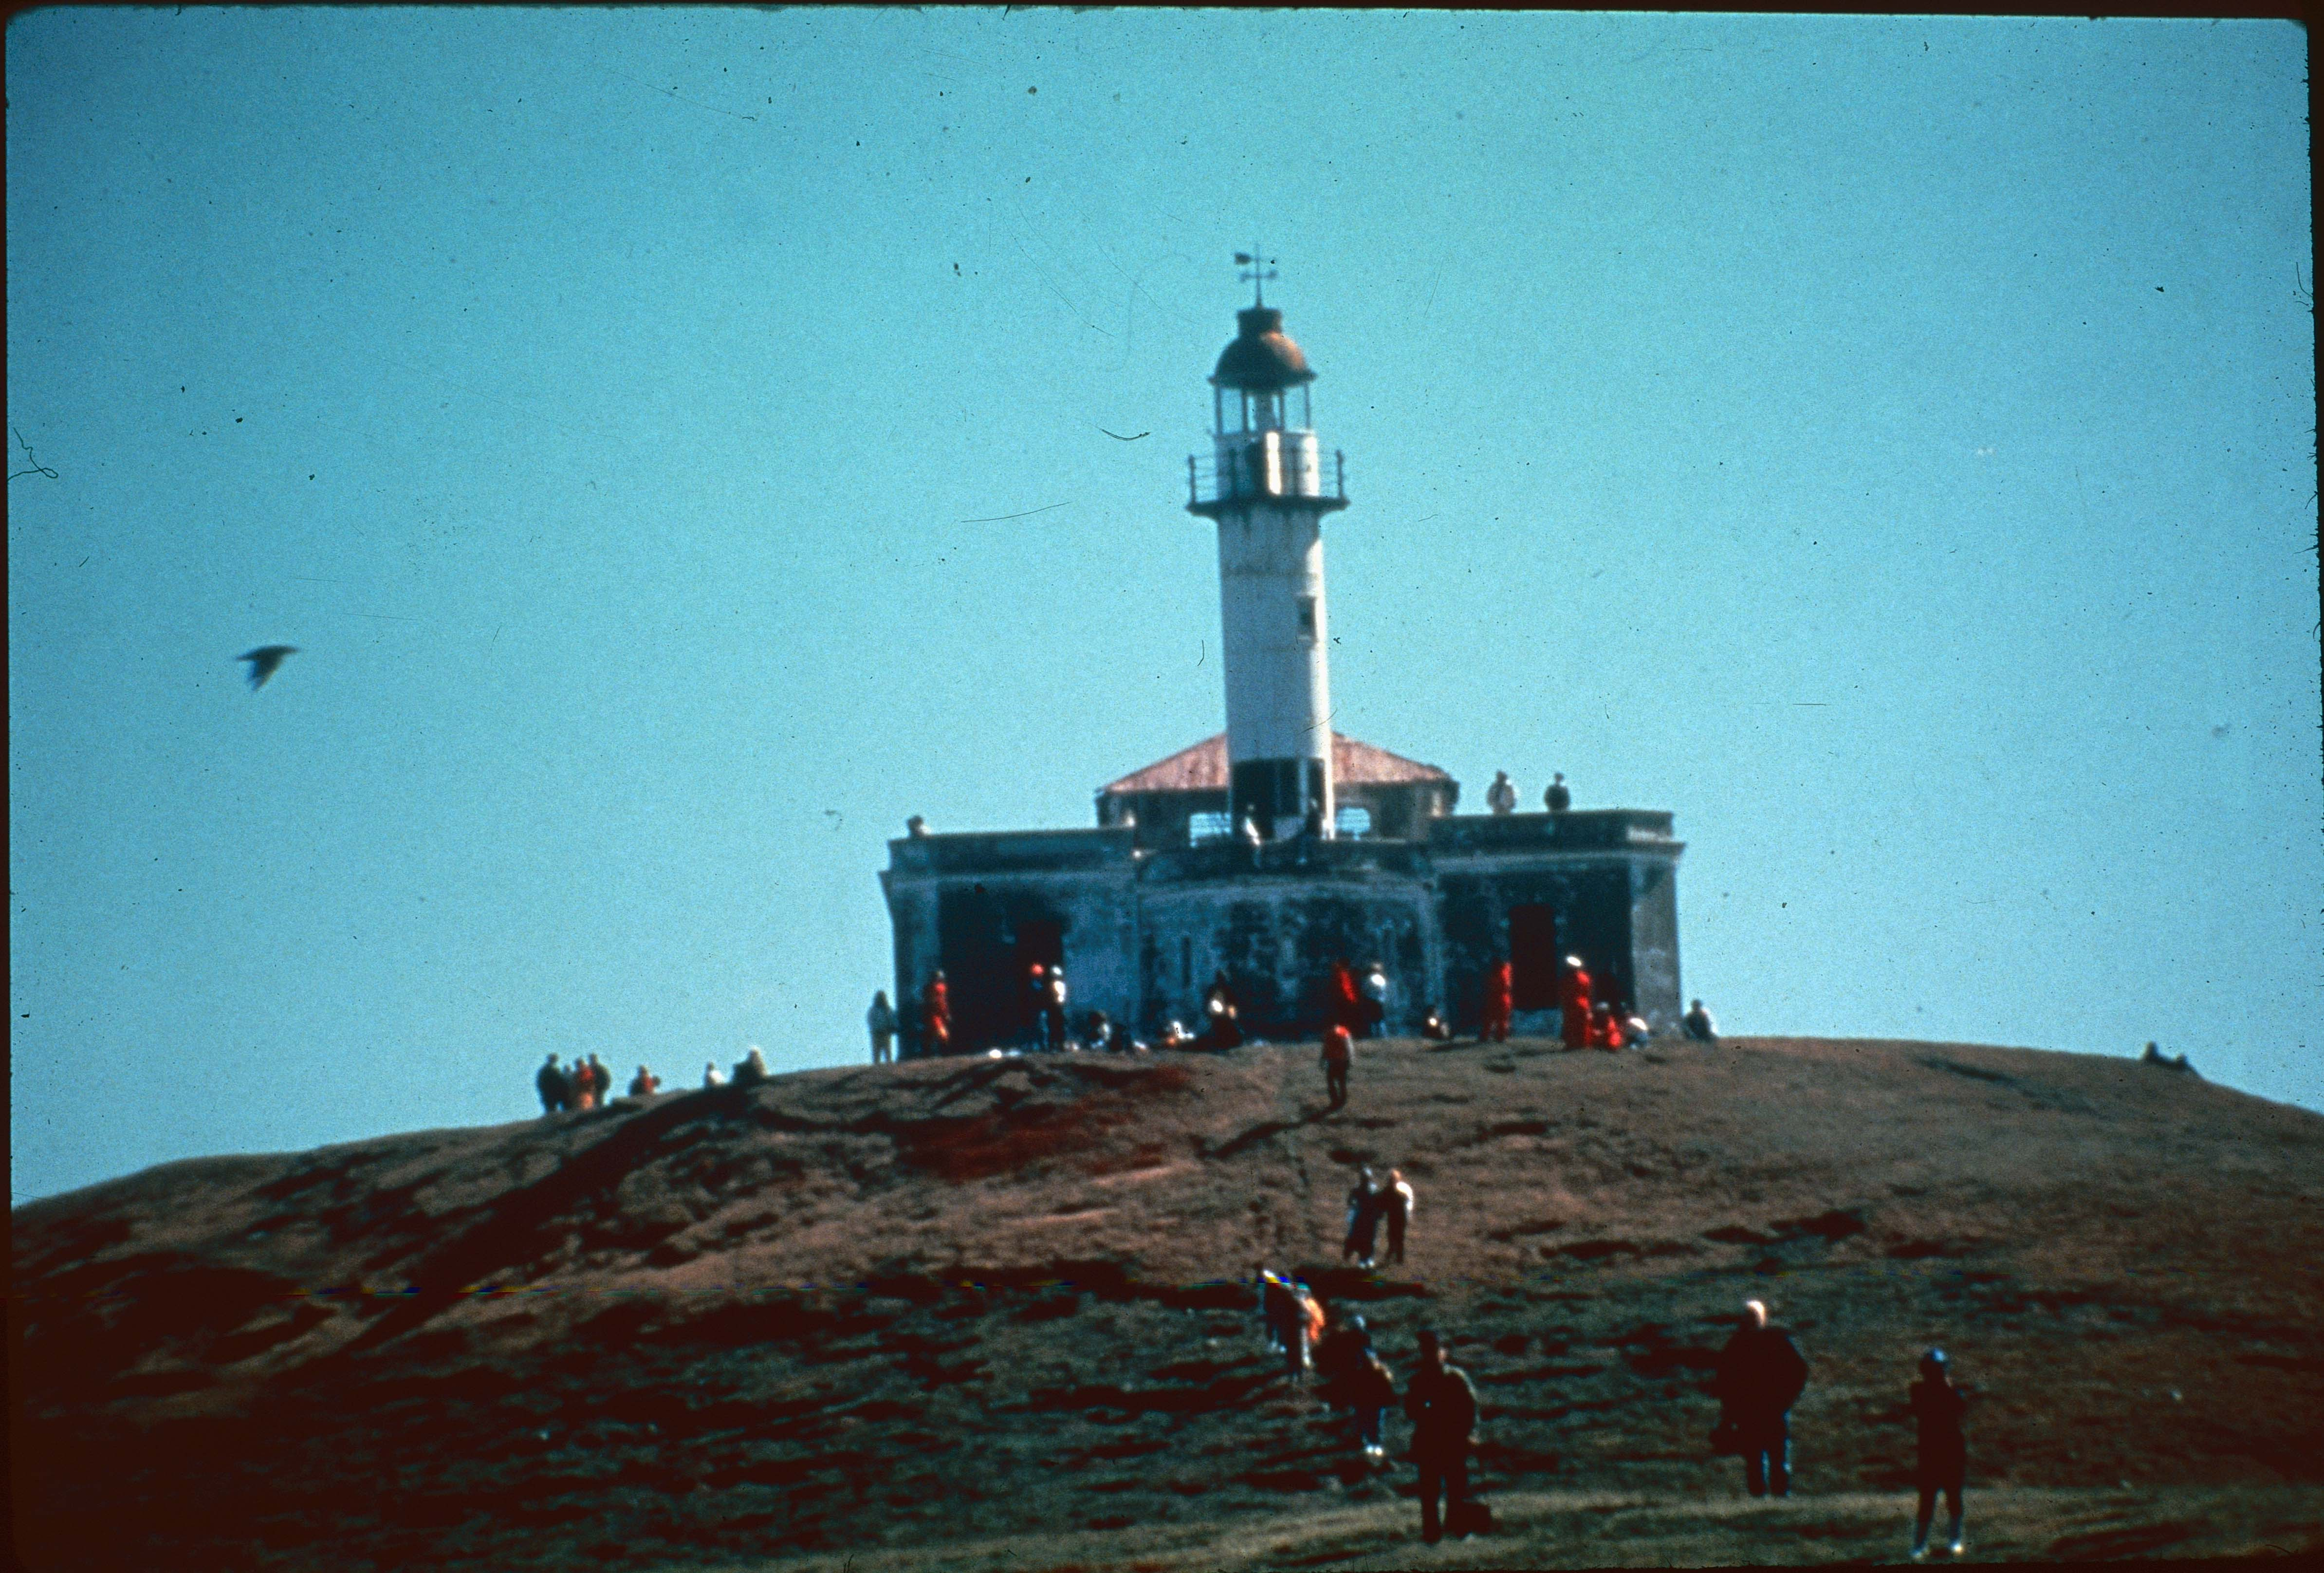 Enterreno - Fotos históricas de chile - fotos antiguas de Chile - Faro Punta Delgada en 1990